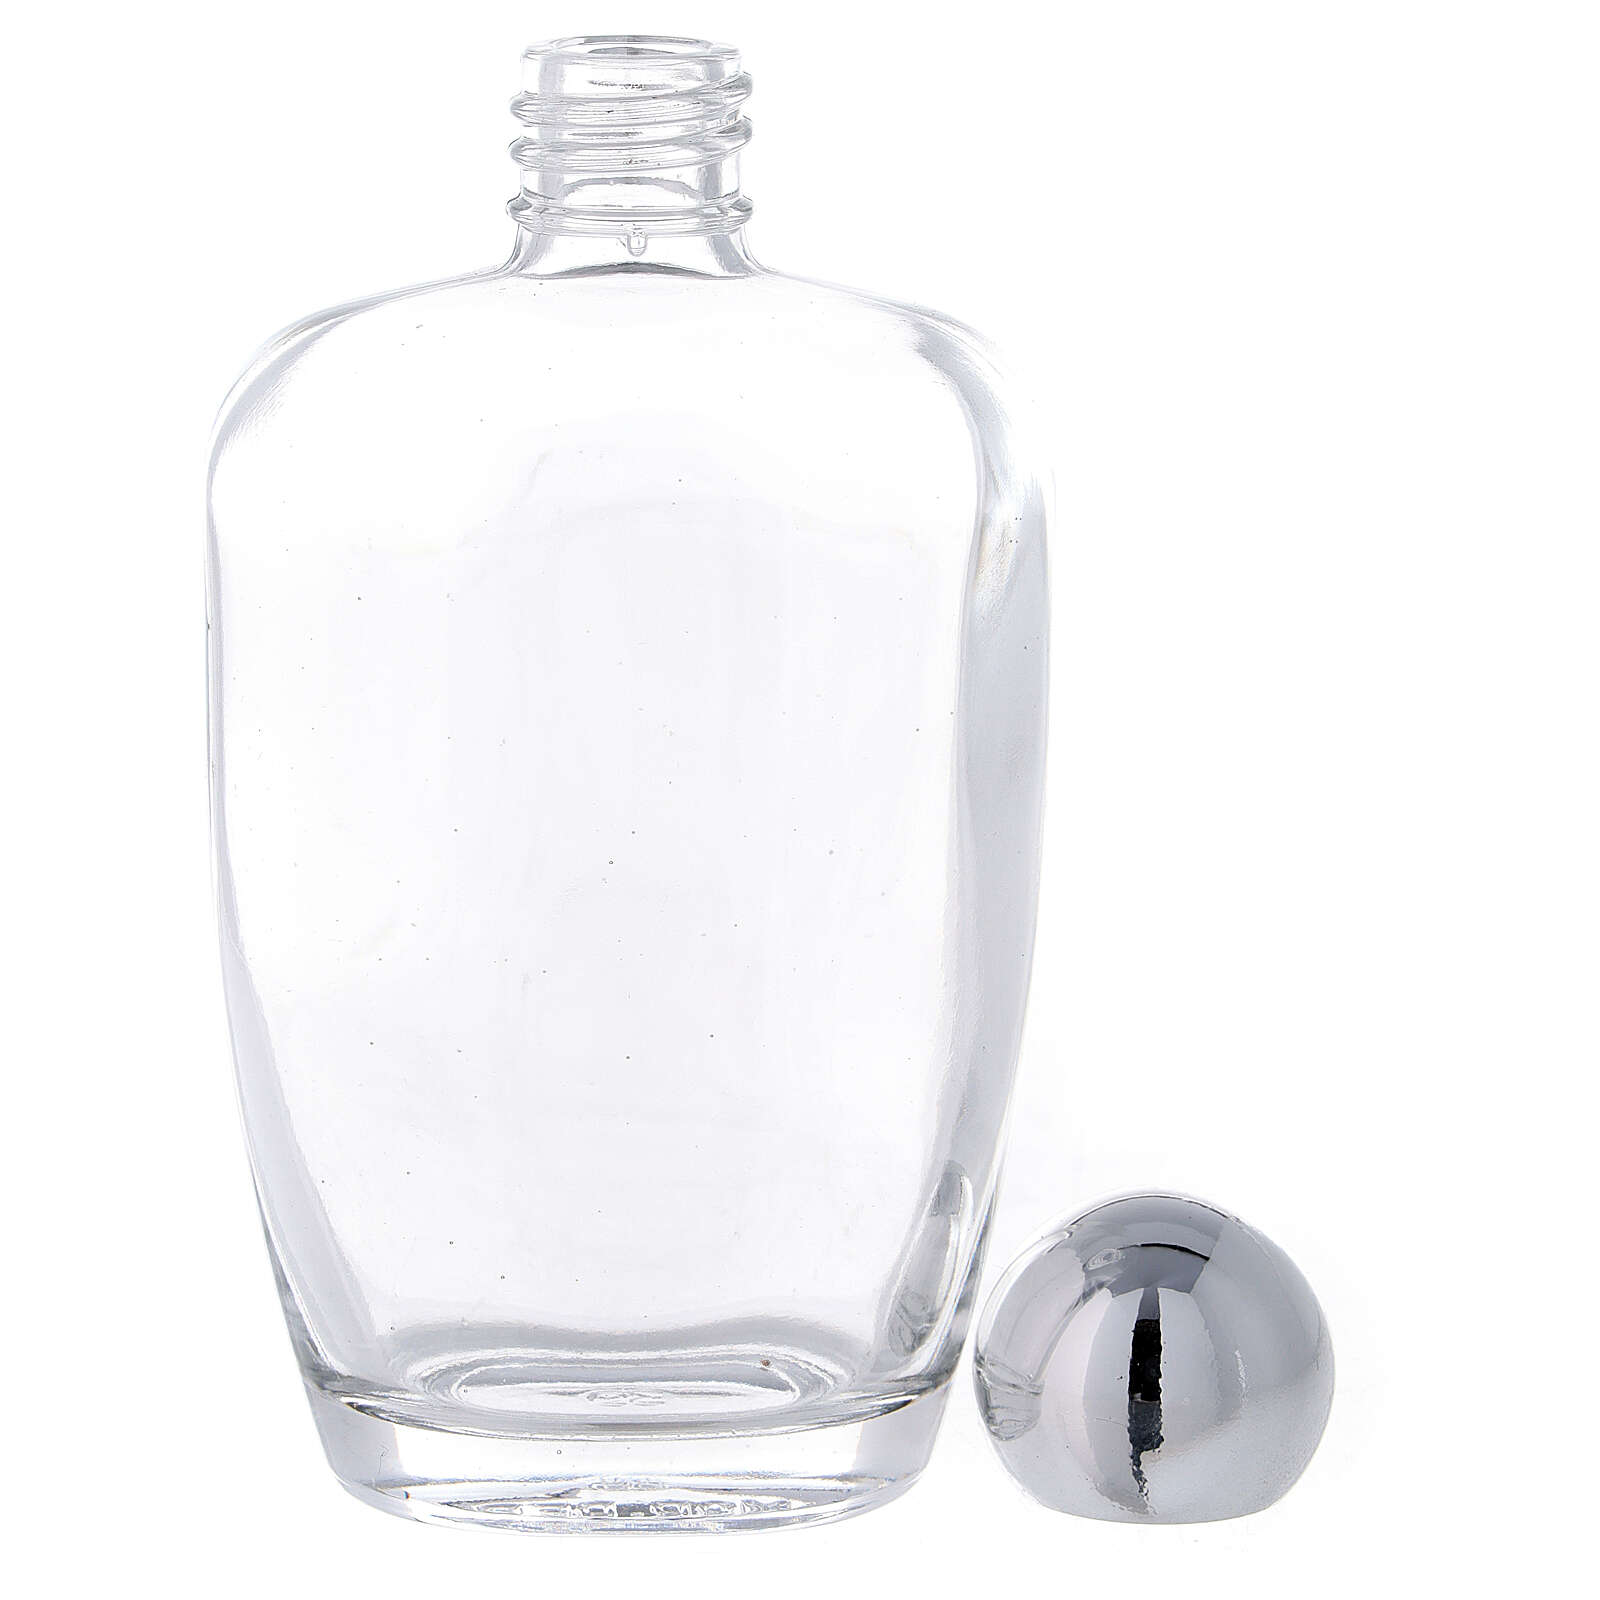 100 ml holy water glass bottle (50-PIECE PACK) 3